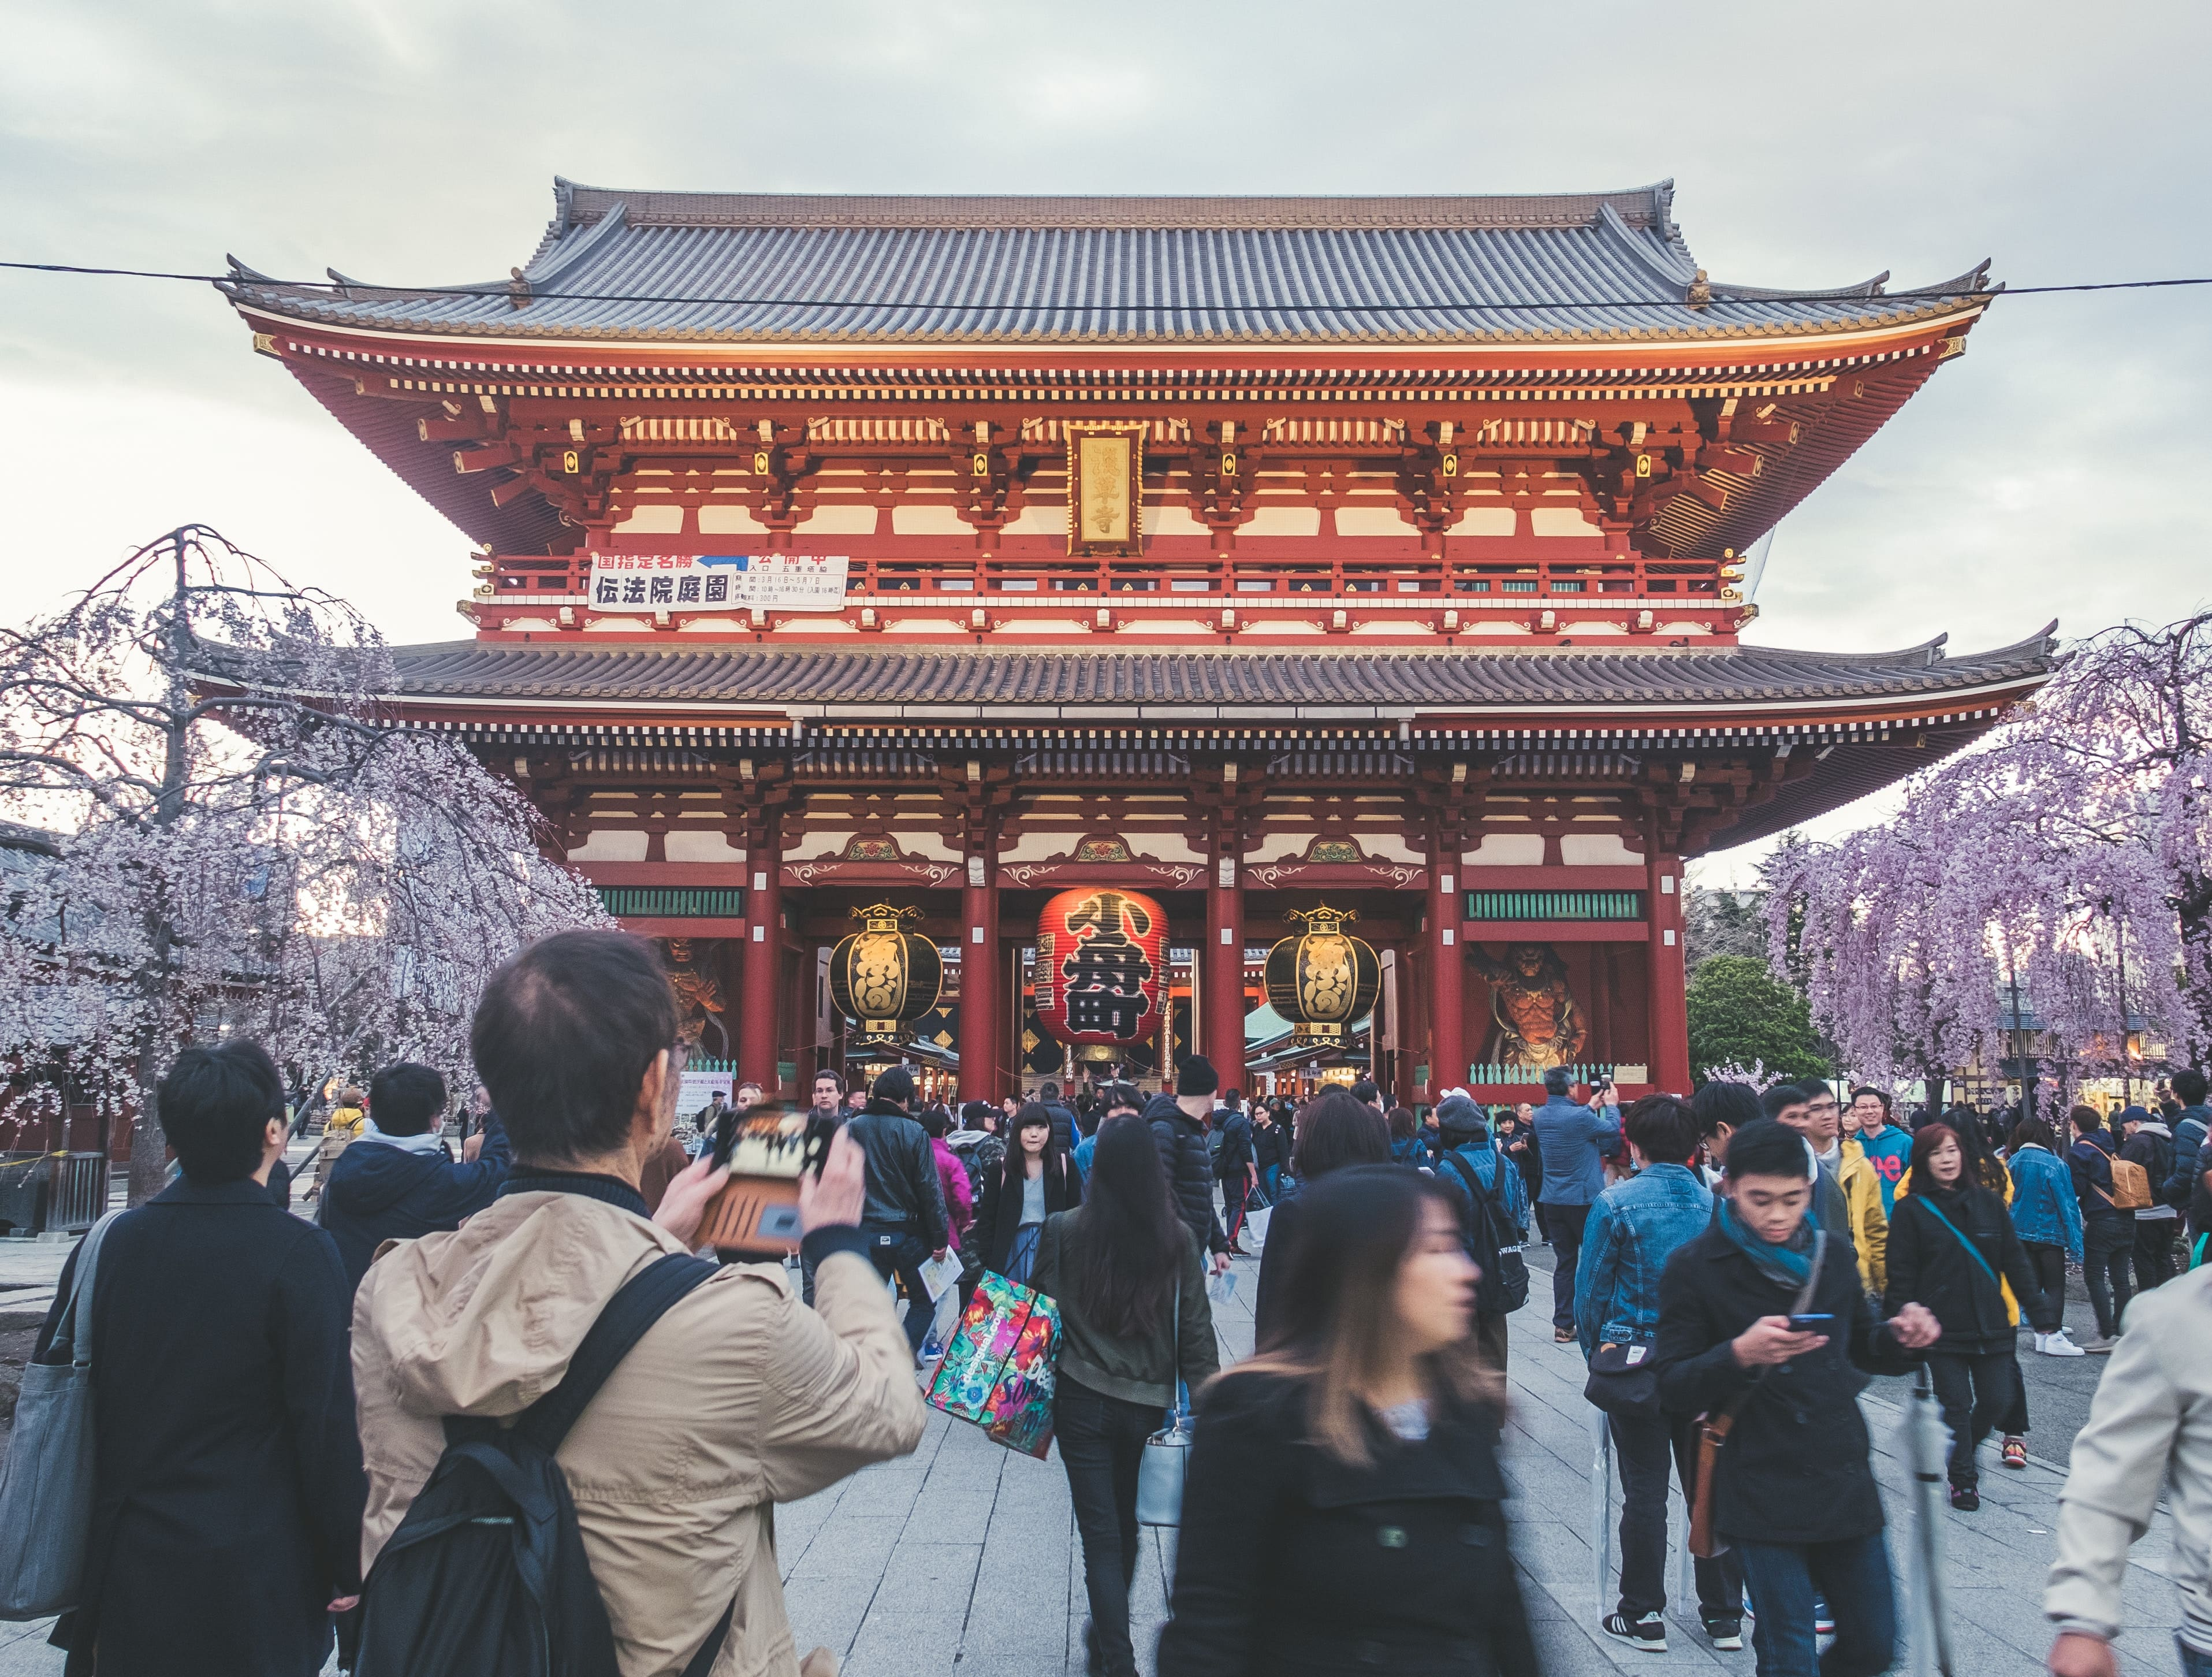 Unlike a Japan travel agency, a local will be available to help during your trip